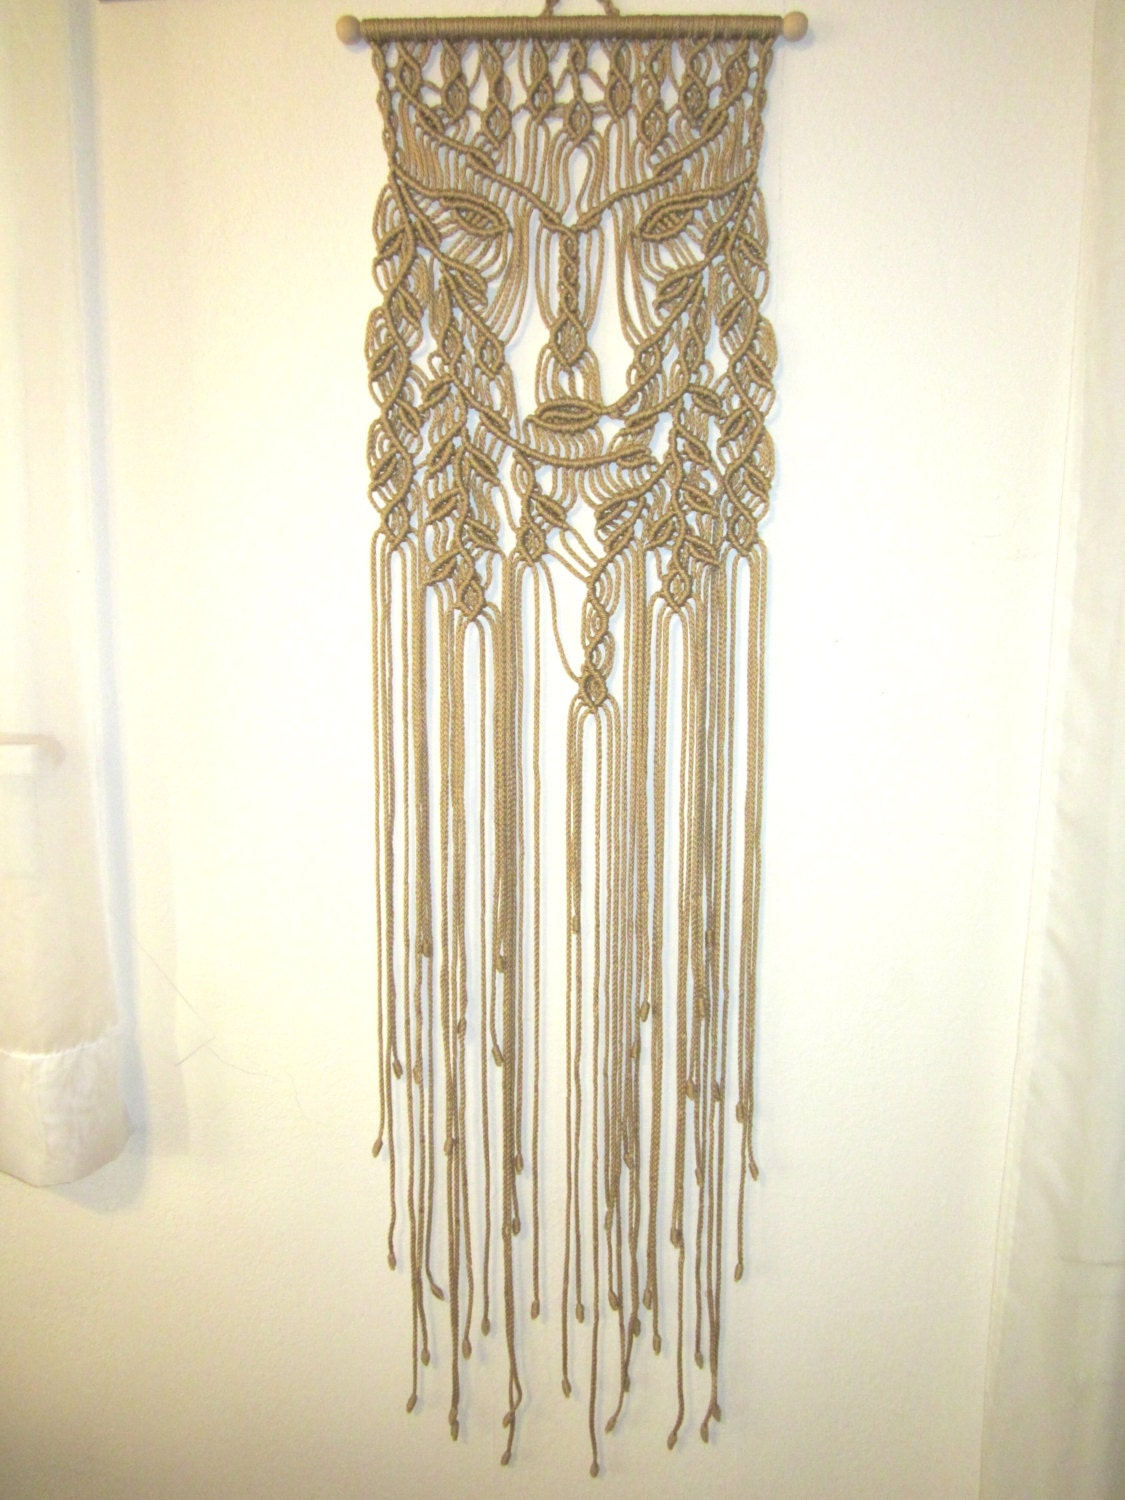 Macrame wall hanging dryad handmade macrame home decor for Wall hanging